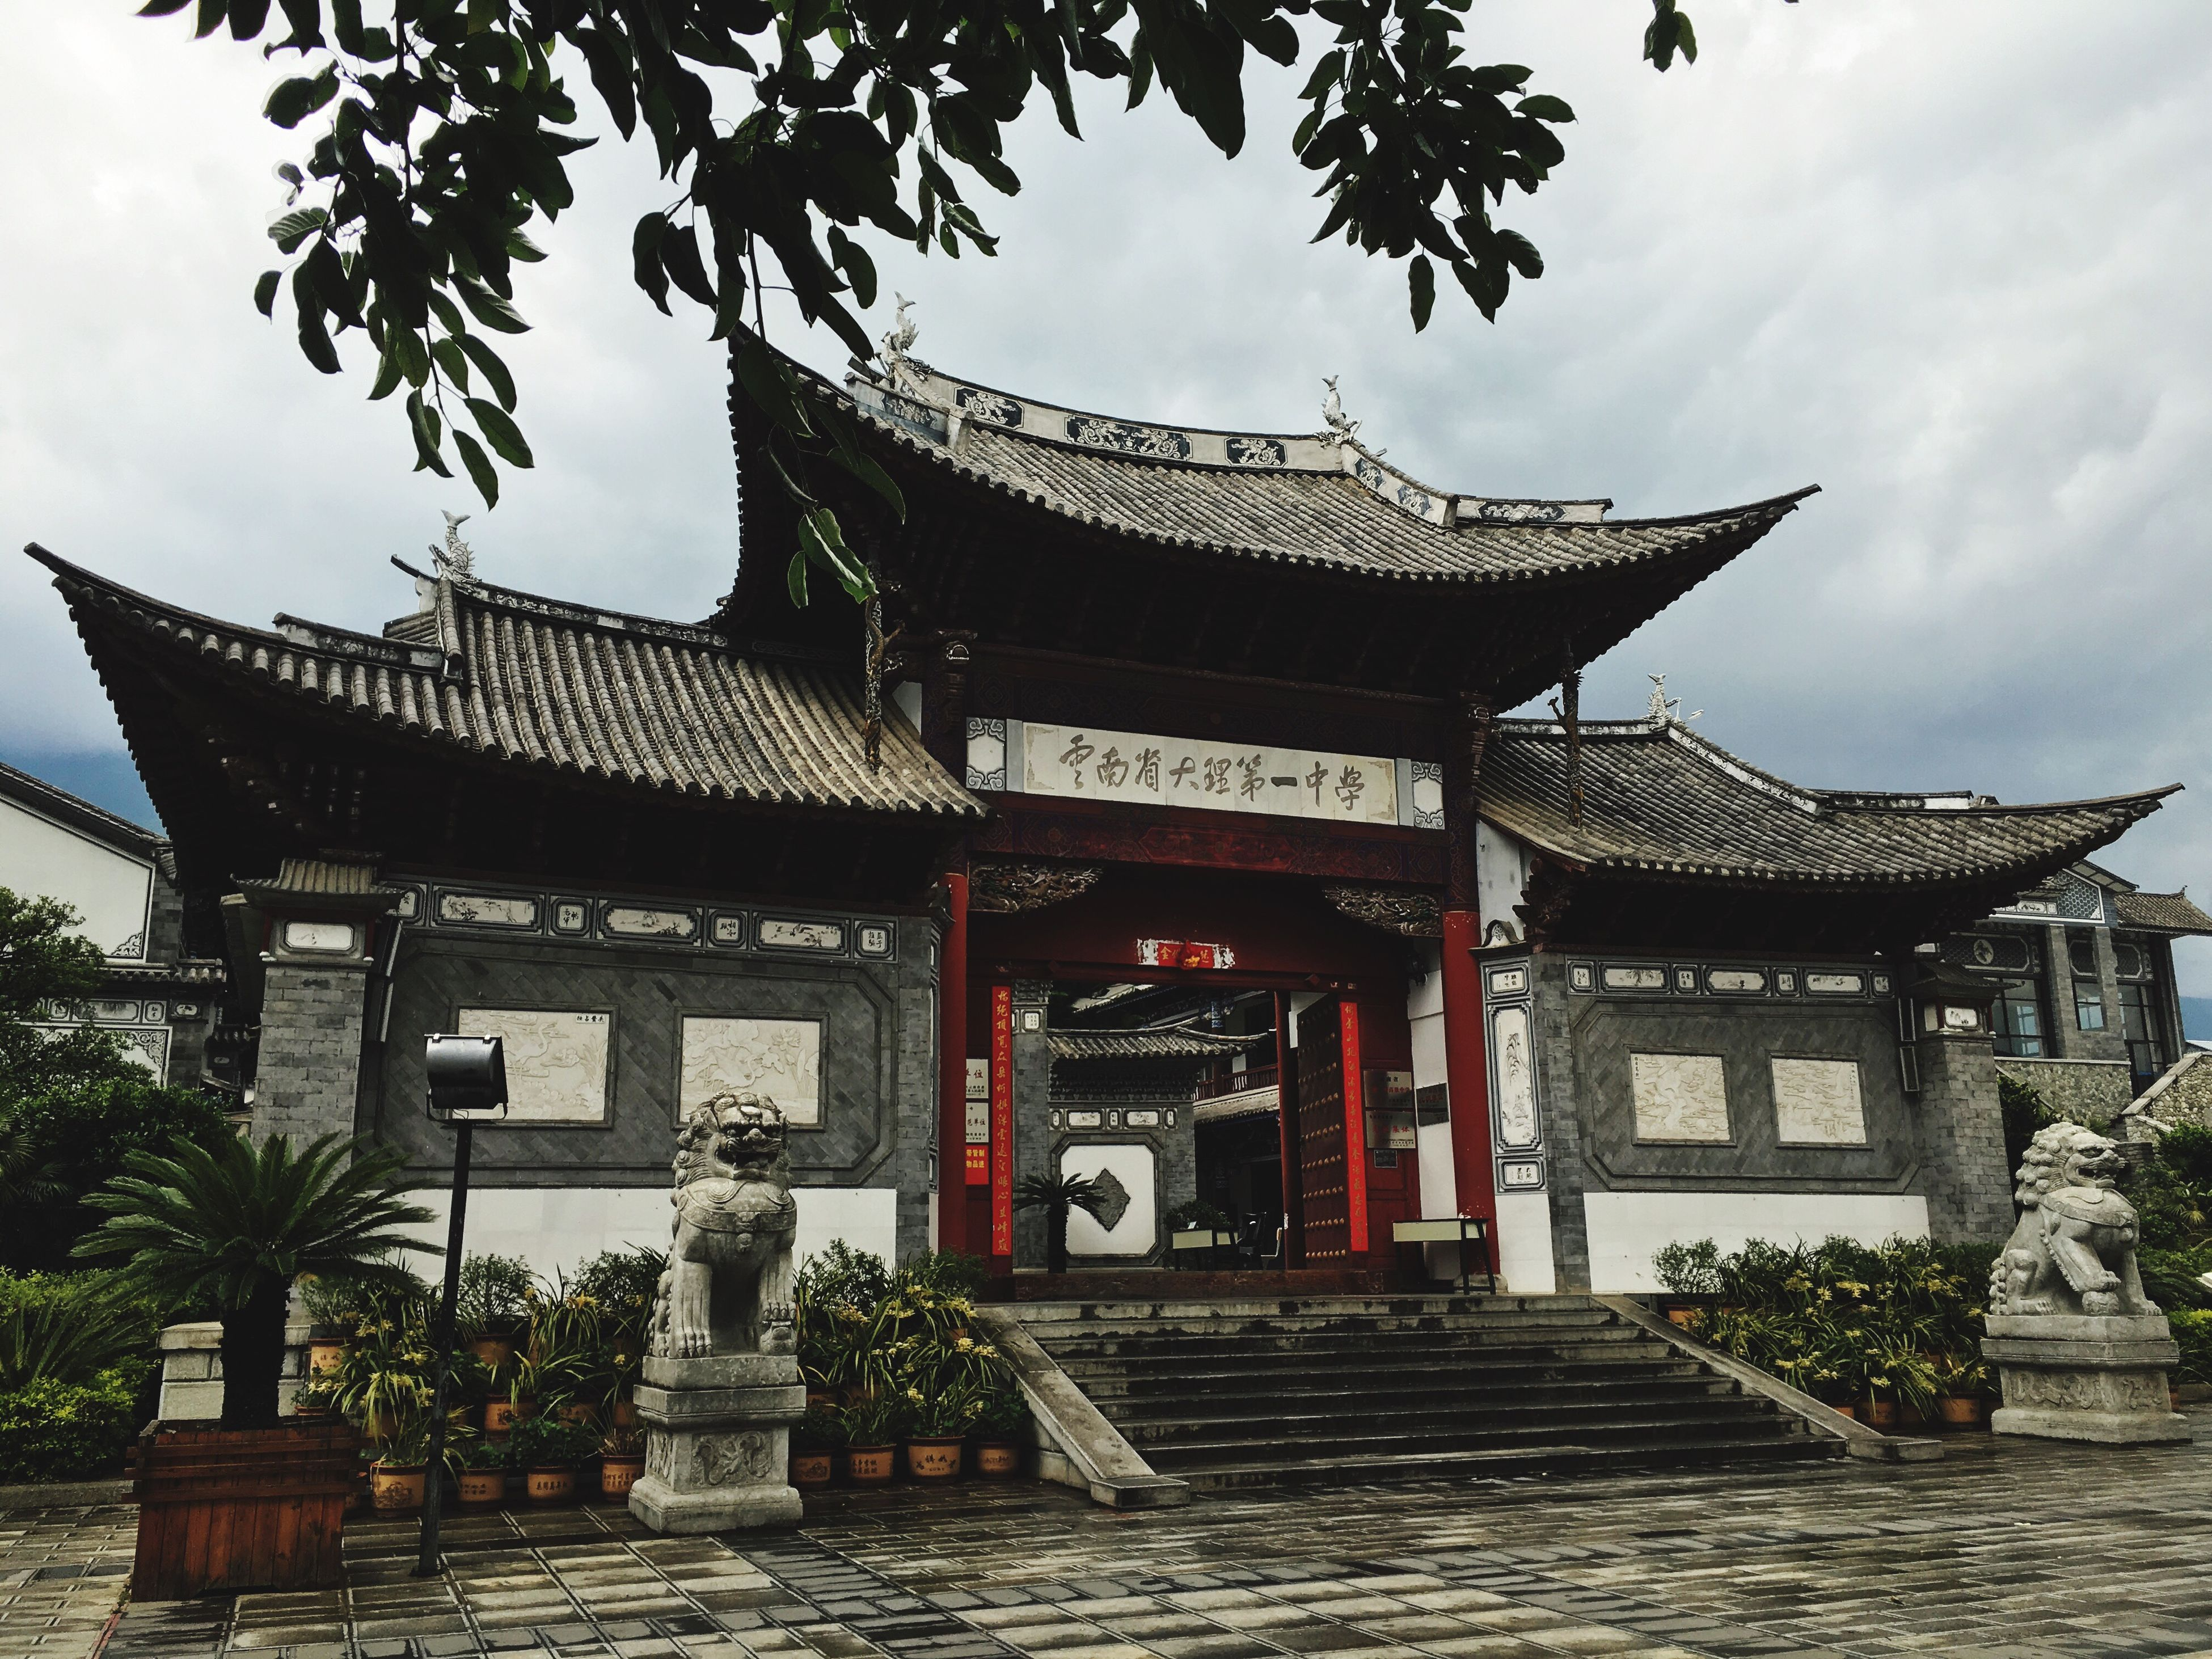 architecture, building exterior, built structure, place of worship, religion, spirituality, temple - building, temple, tree, tradition, low angle view, sky, roof, ornate, pagoda, facade, entrance, cultures, travel destinations